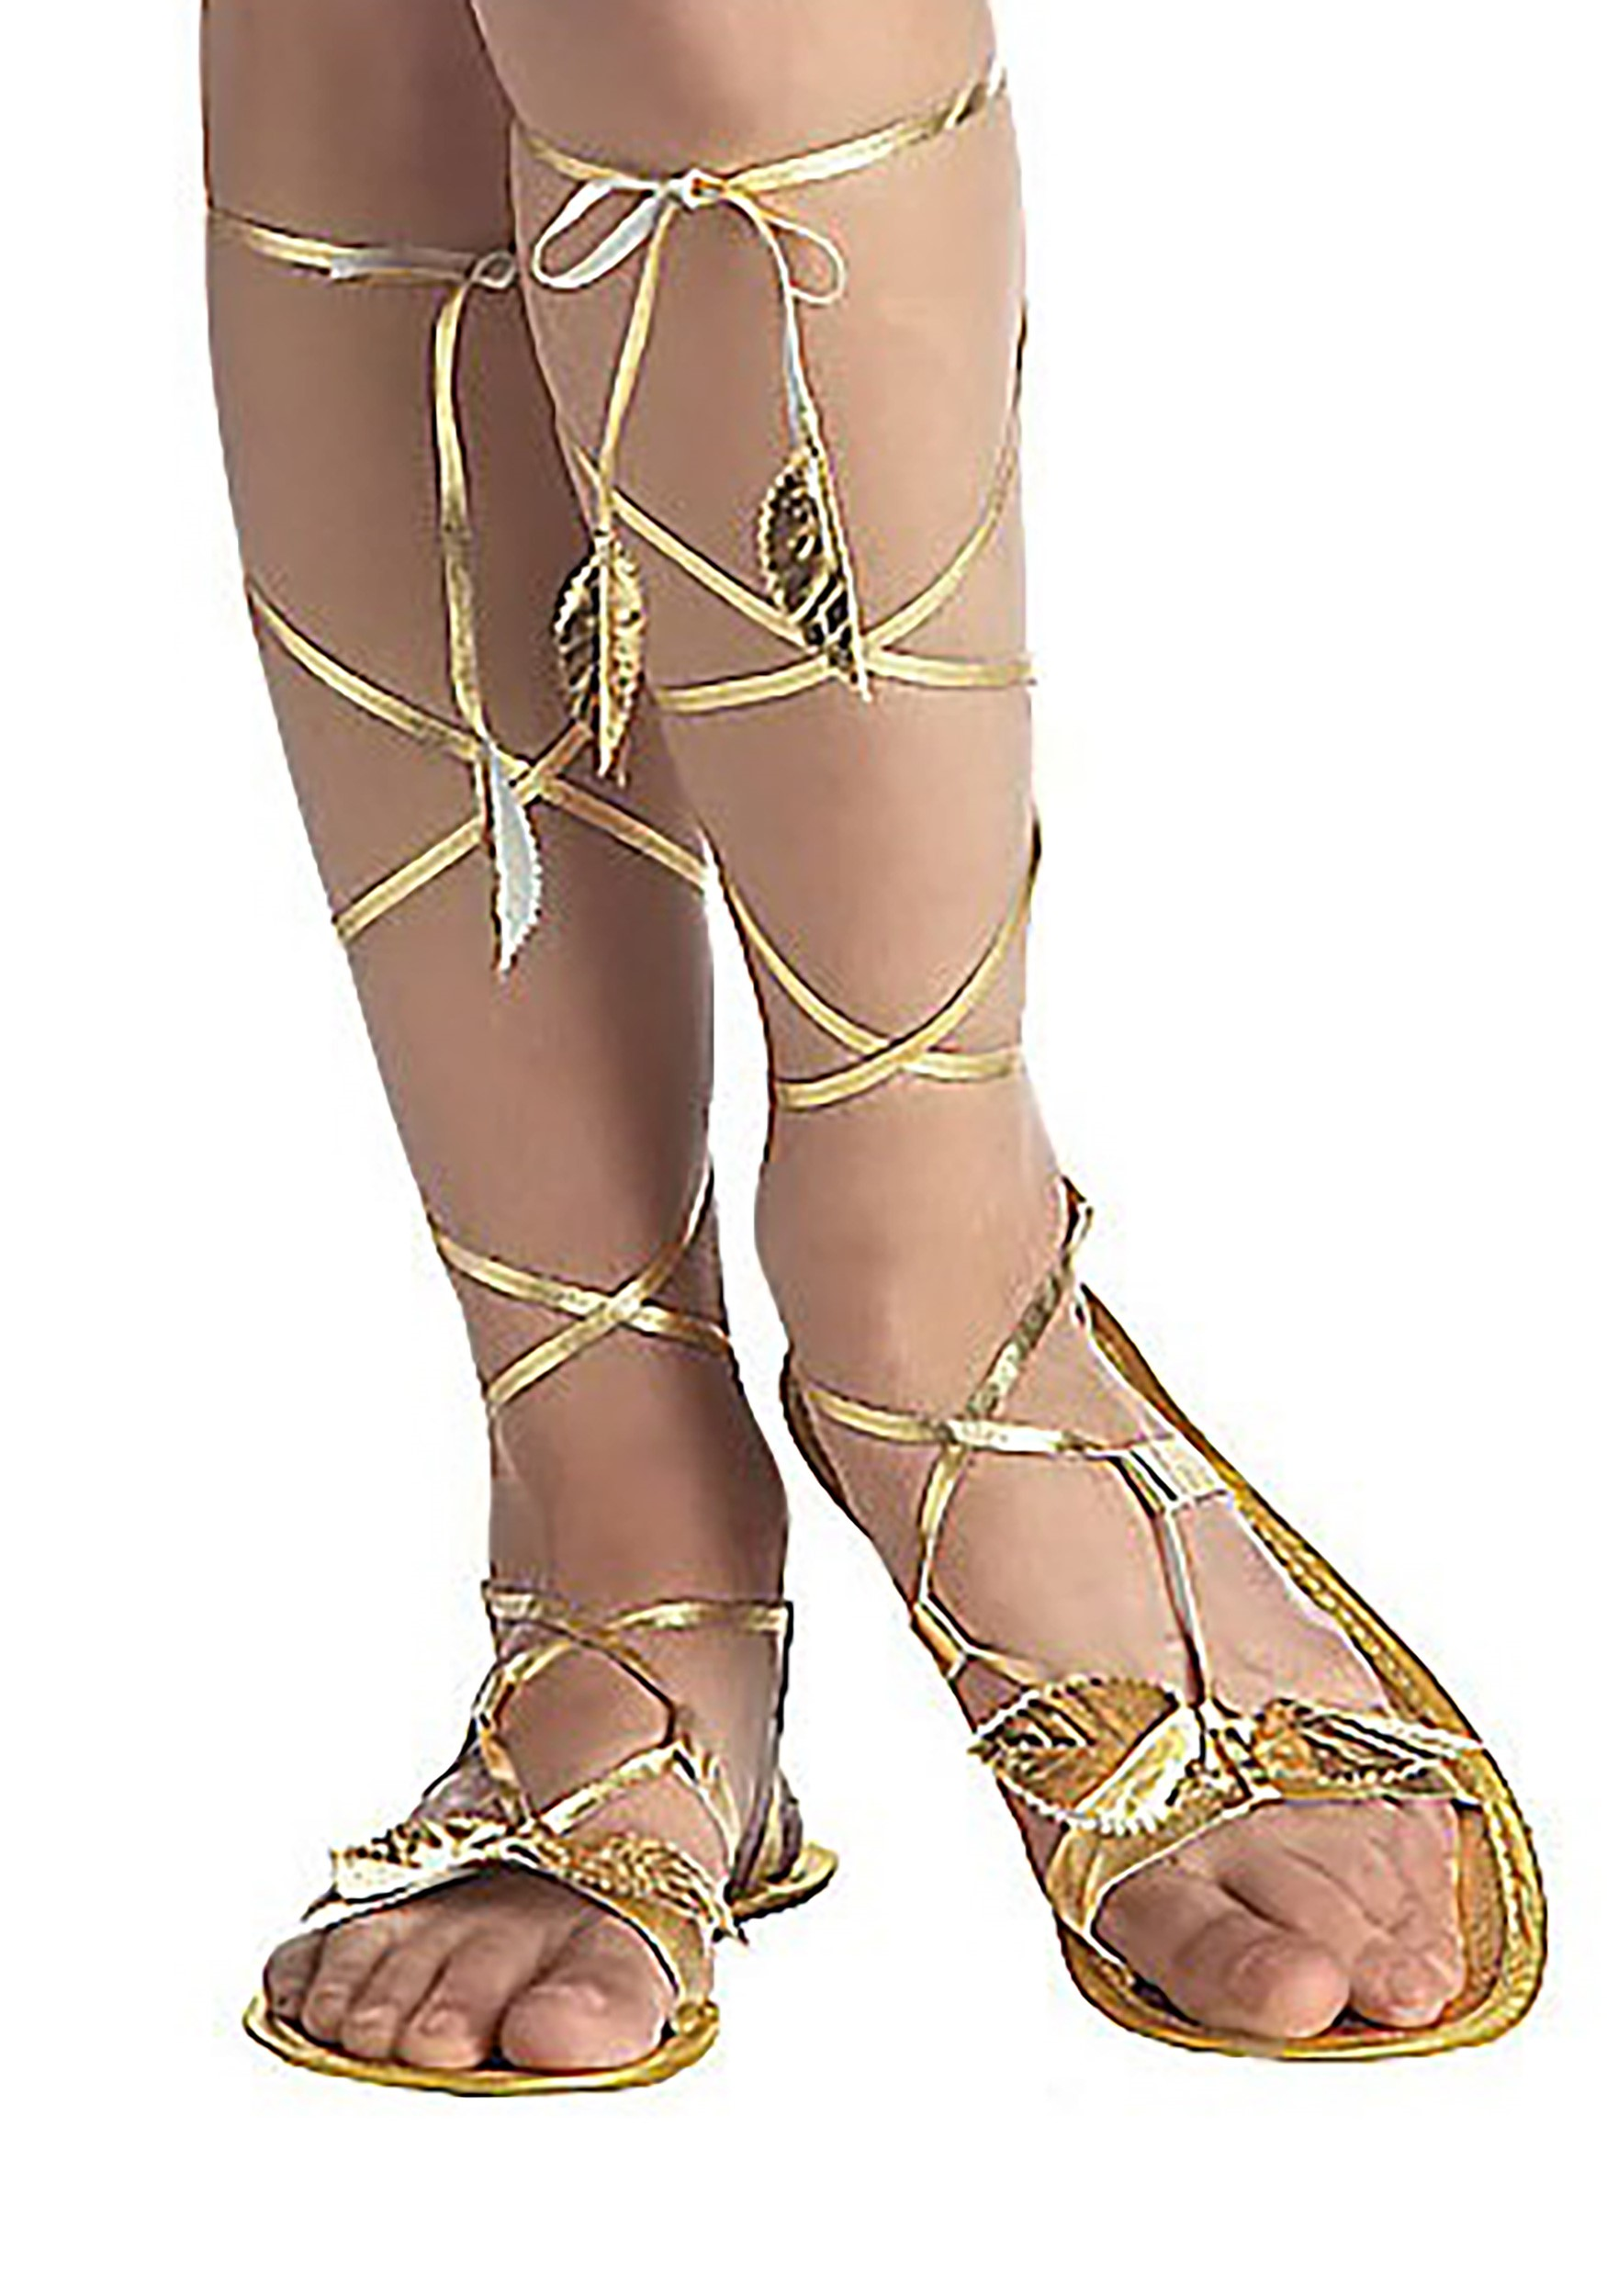 Adult Costume Accessory Goddess Sandals